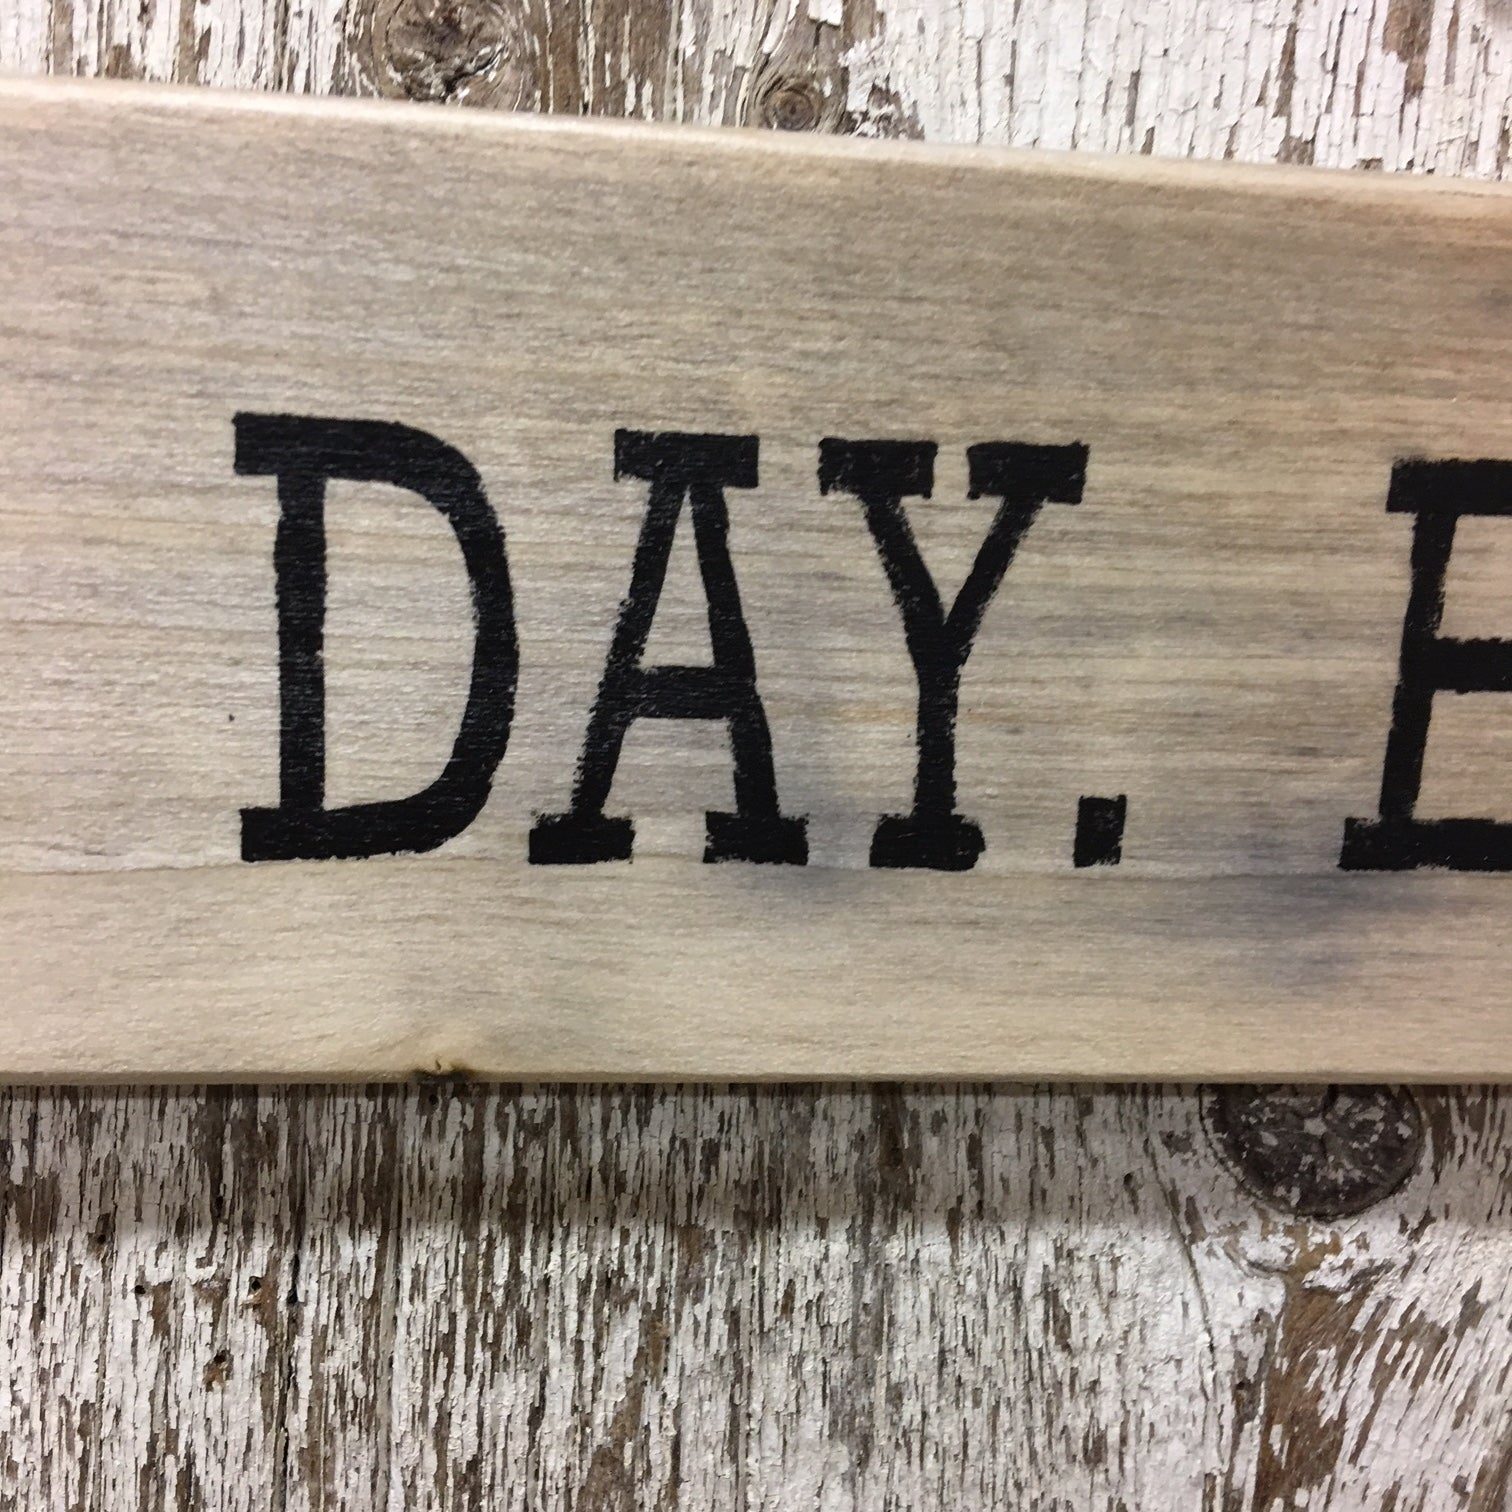 wedding gift ideas anniversary gift decor best day ever sign wooden